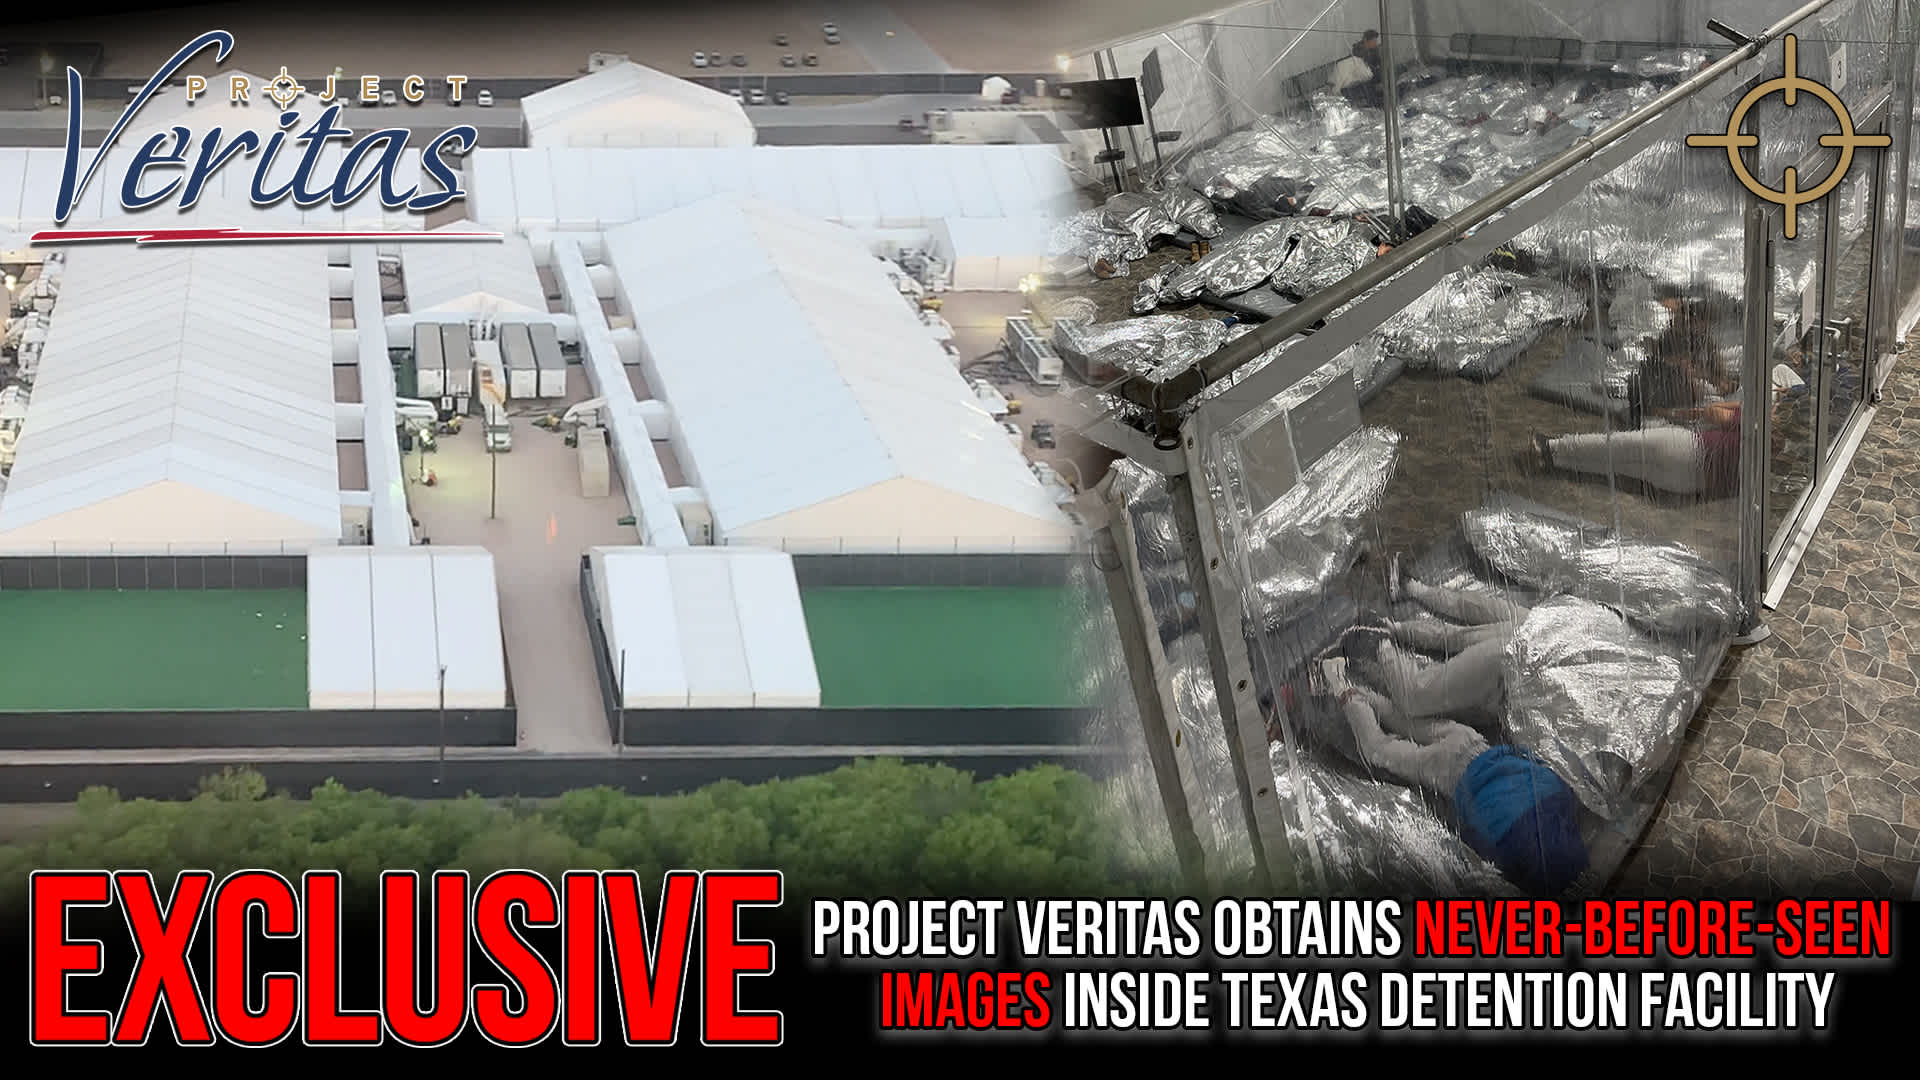 Aerial and interior view of illegal migrant facility in Texas